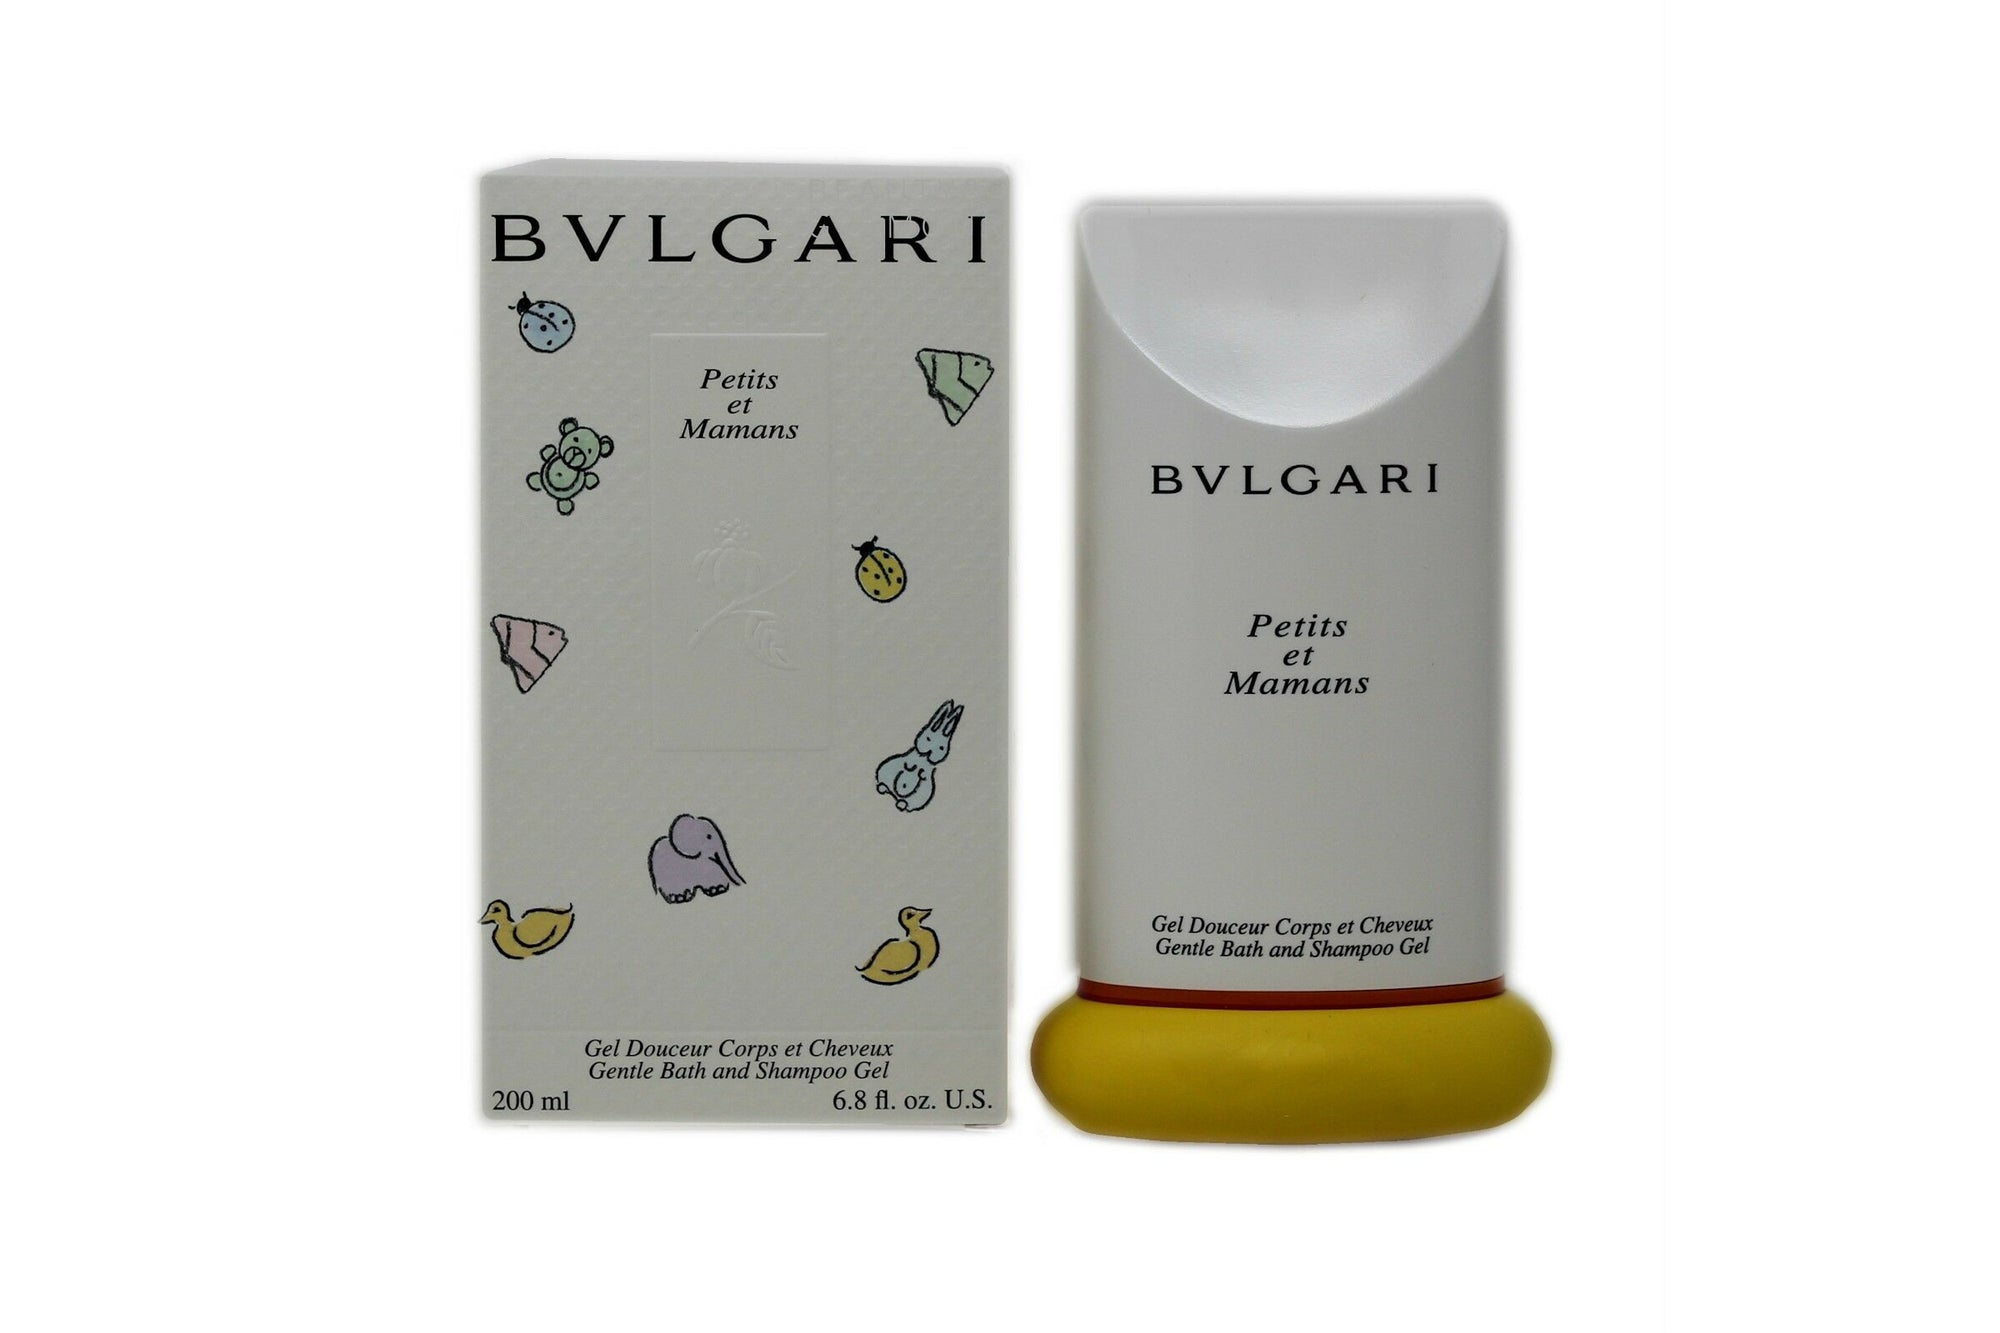 BVLGARI PETITS ET MAMANS GENTLE BATH AND SHAMPOO GEL